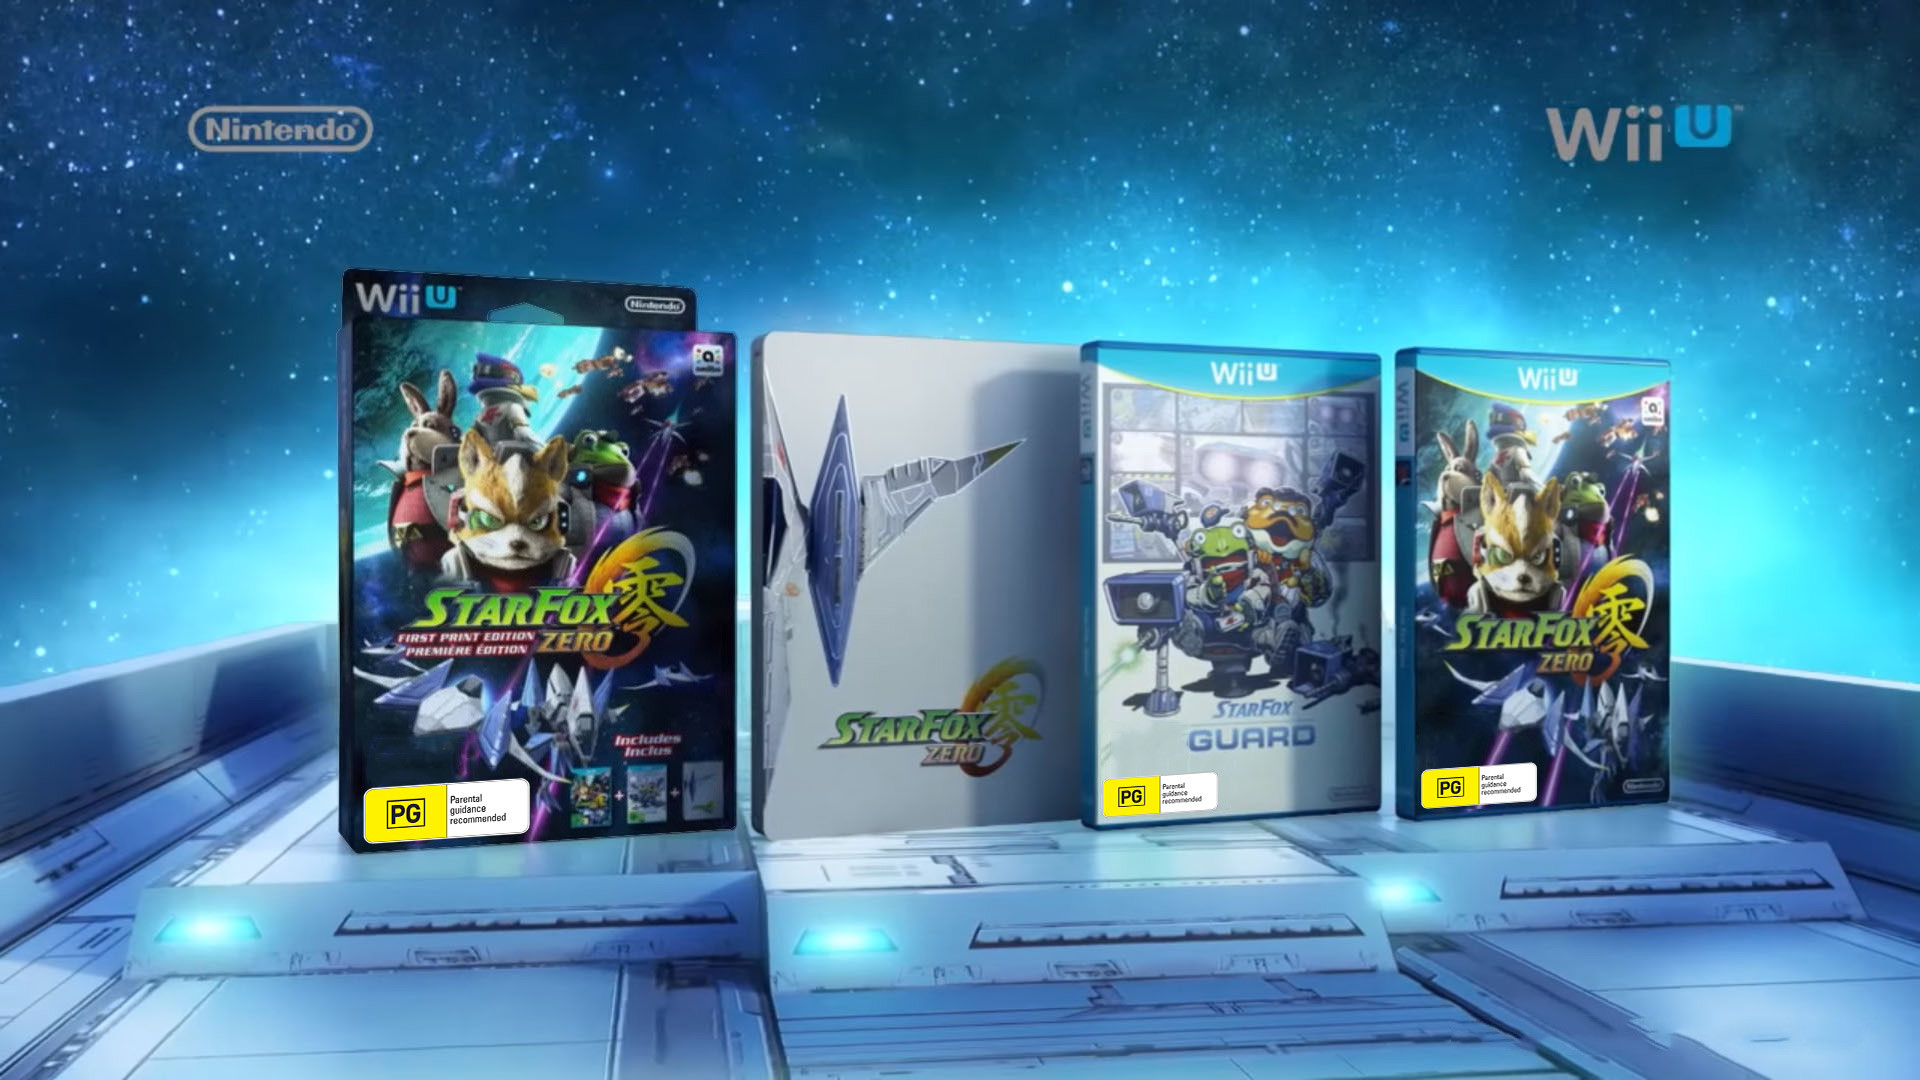 1920x1080 Star Fox Zero First Print Edition Includes: